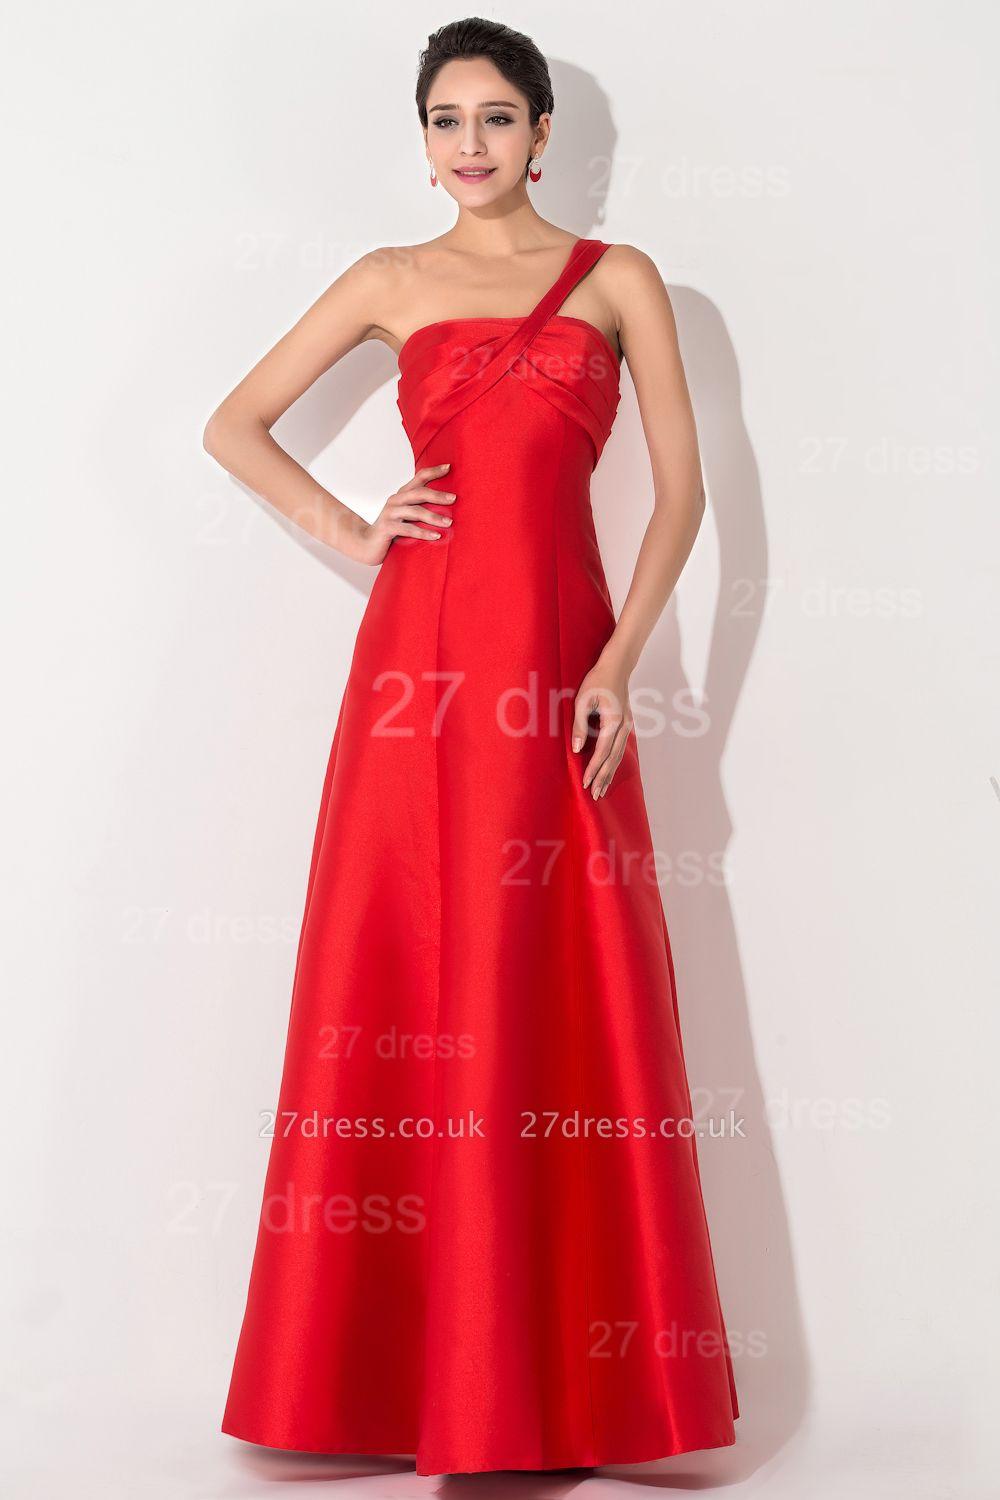 Newest A-line Red Sleeveless Evening Dress UK Floor-length Lace-up